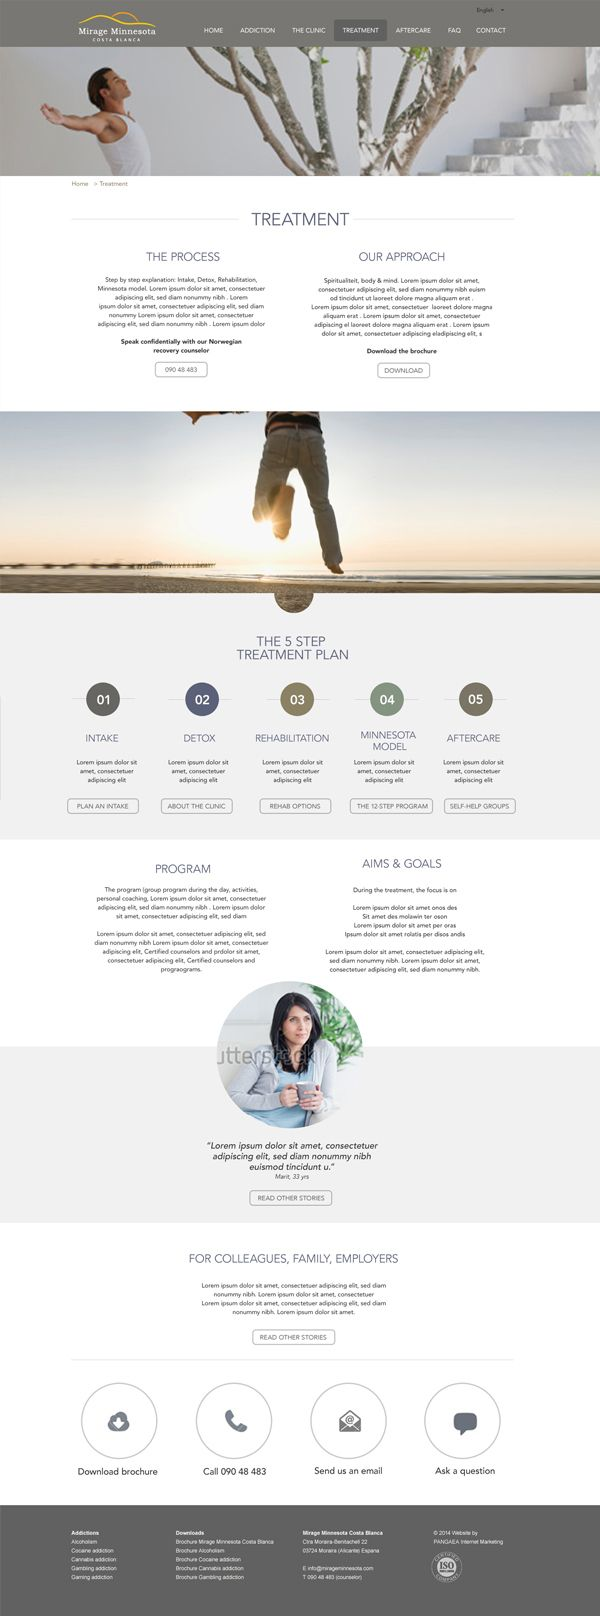 One page webdesign for Mirage